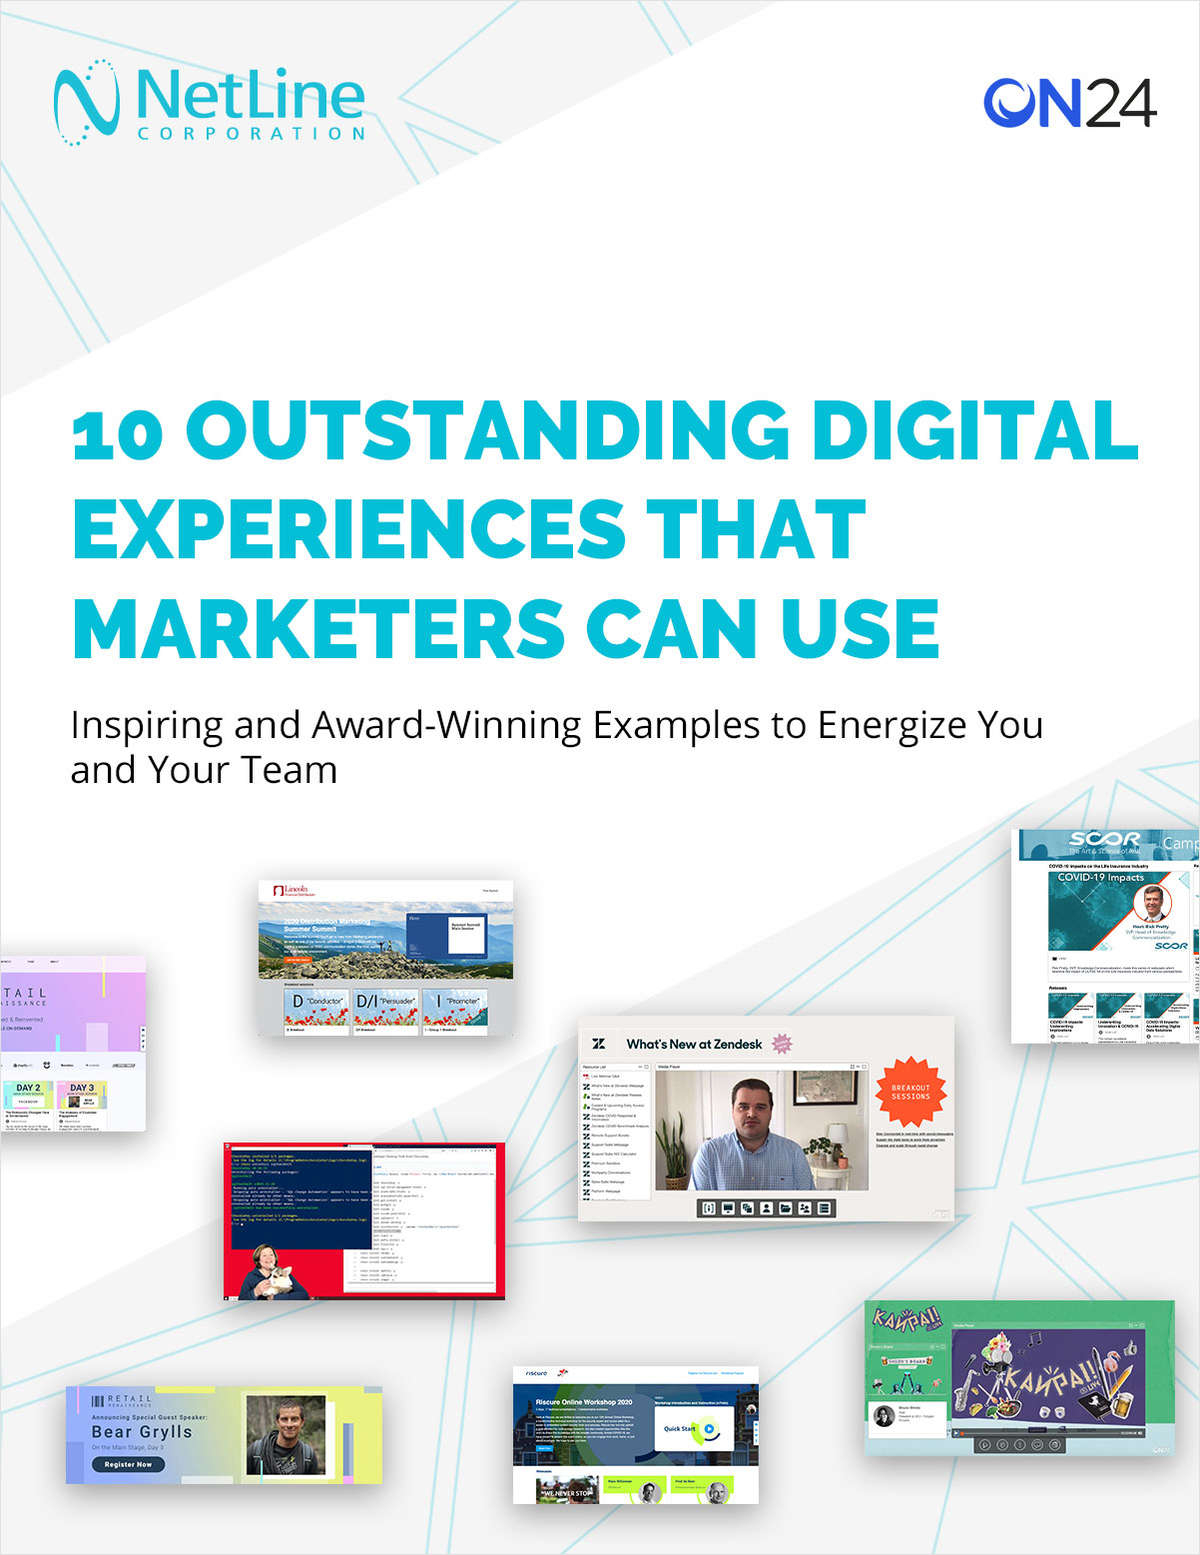 10 Outstanding Digital Experiences Marketers Can Use